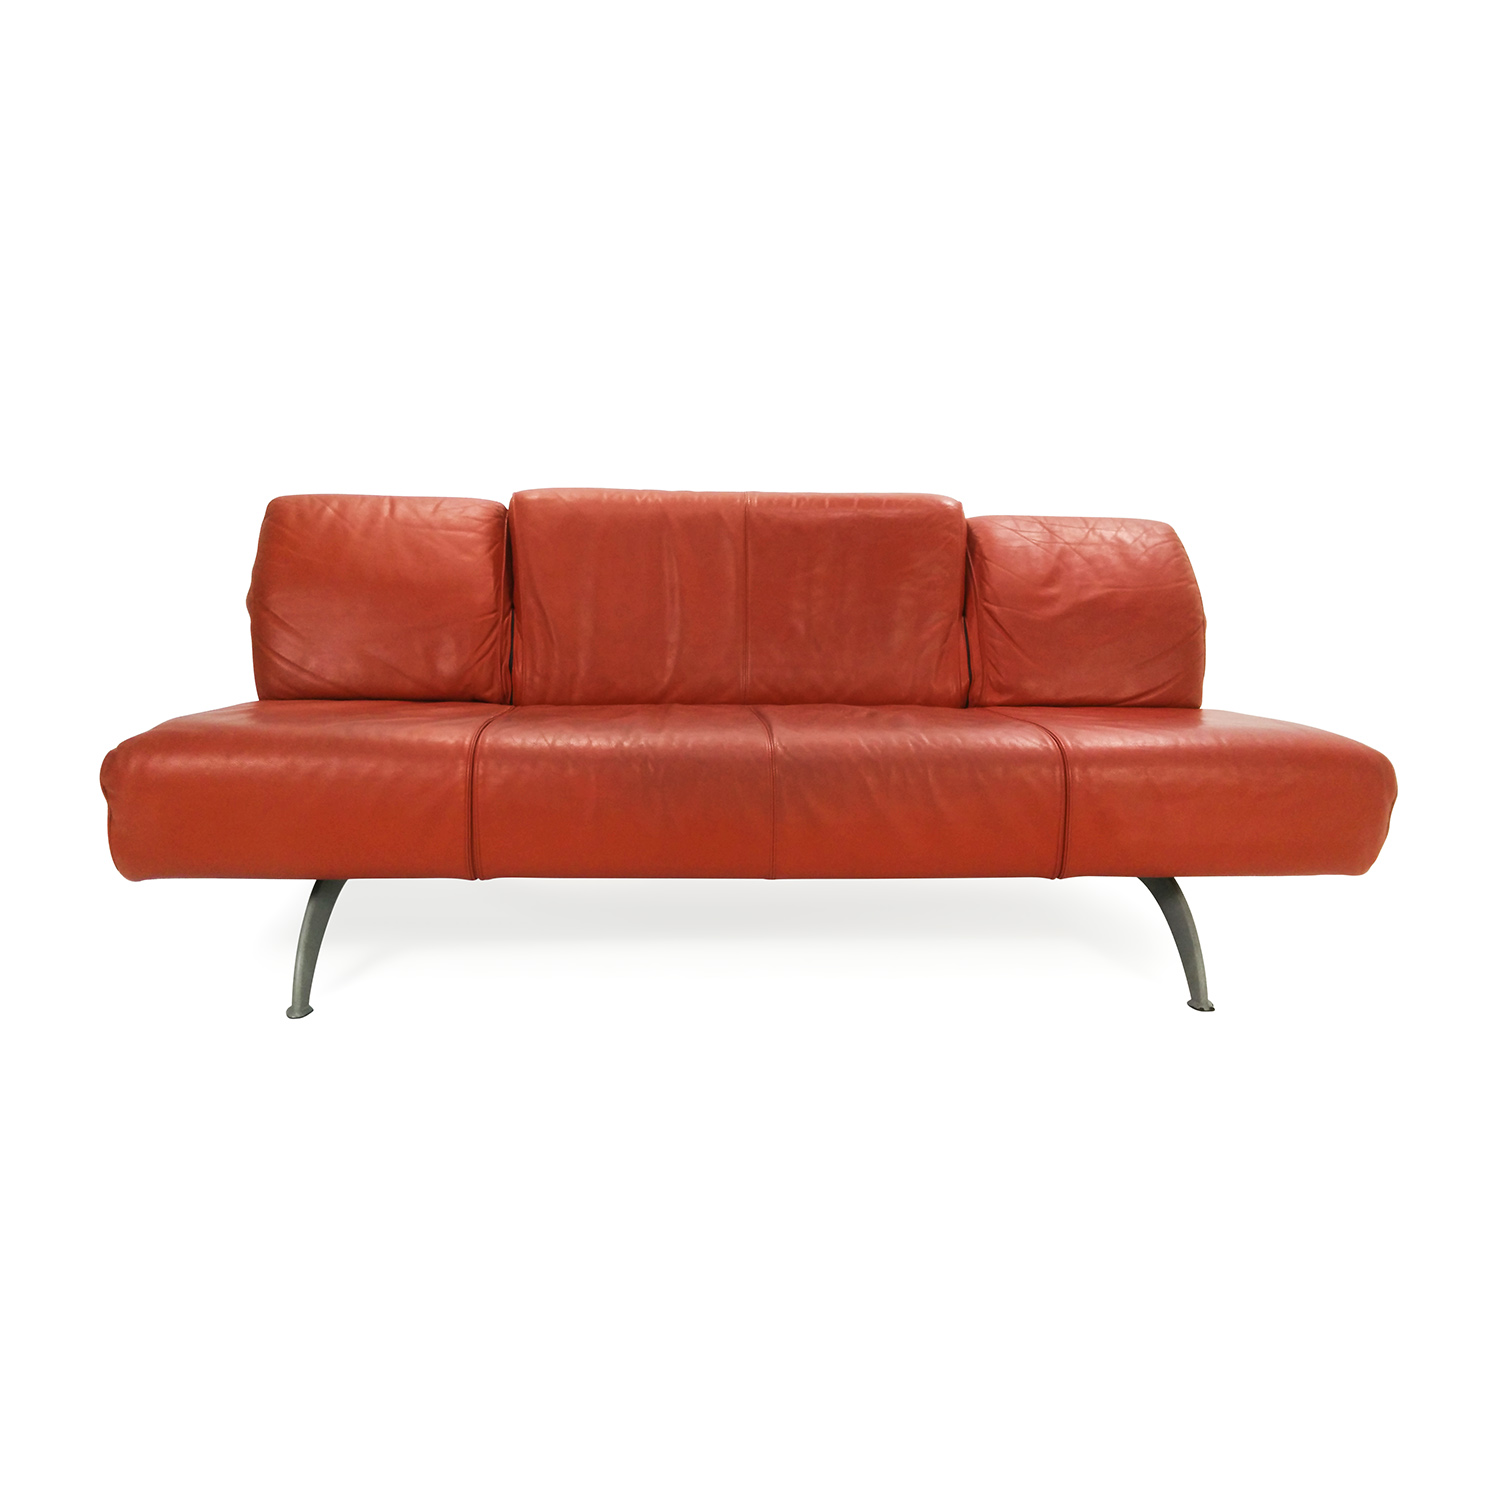 buy Team by Wellis Team by Wellis Red Leather Sofa online